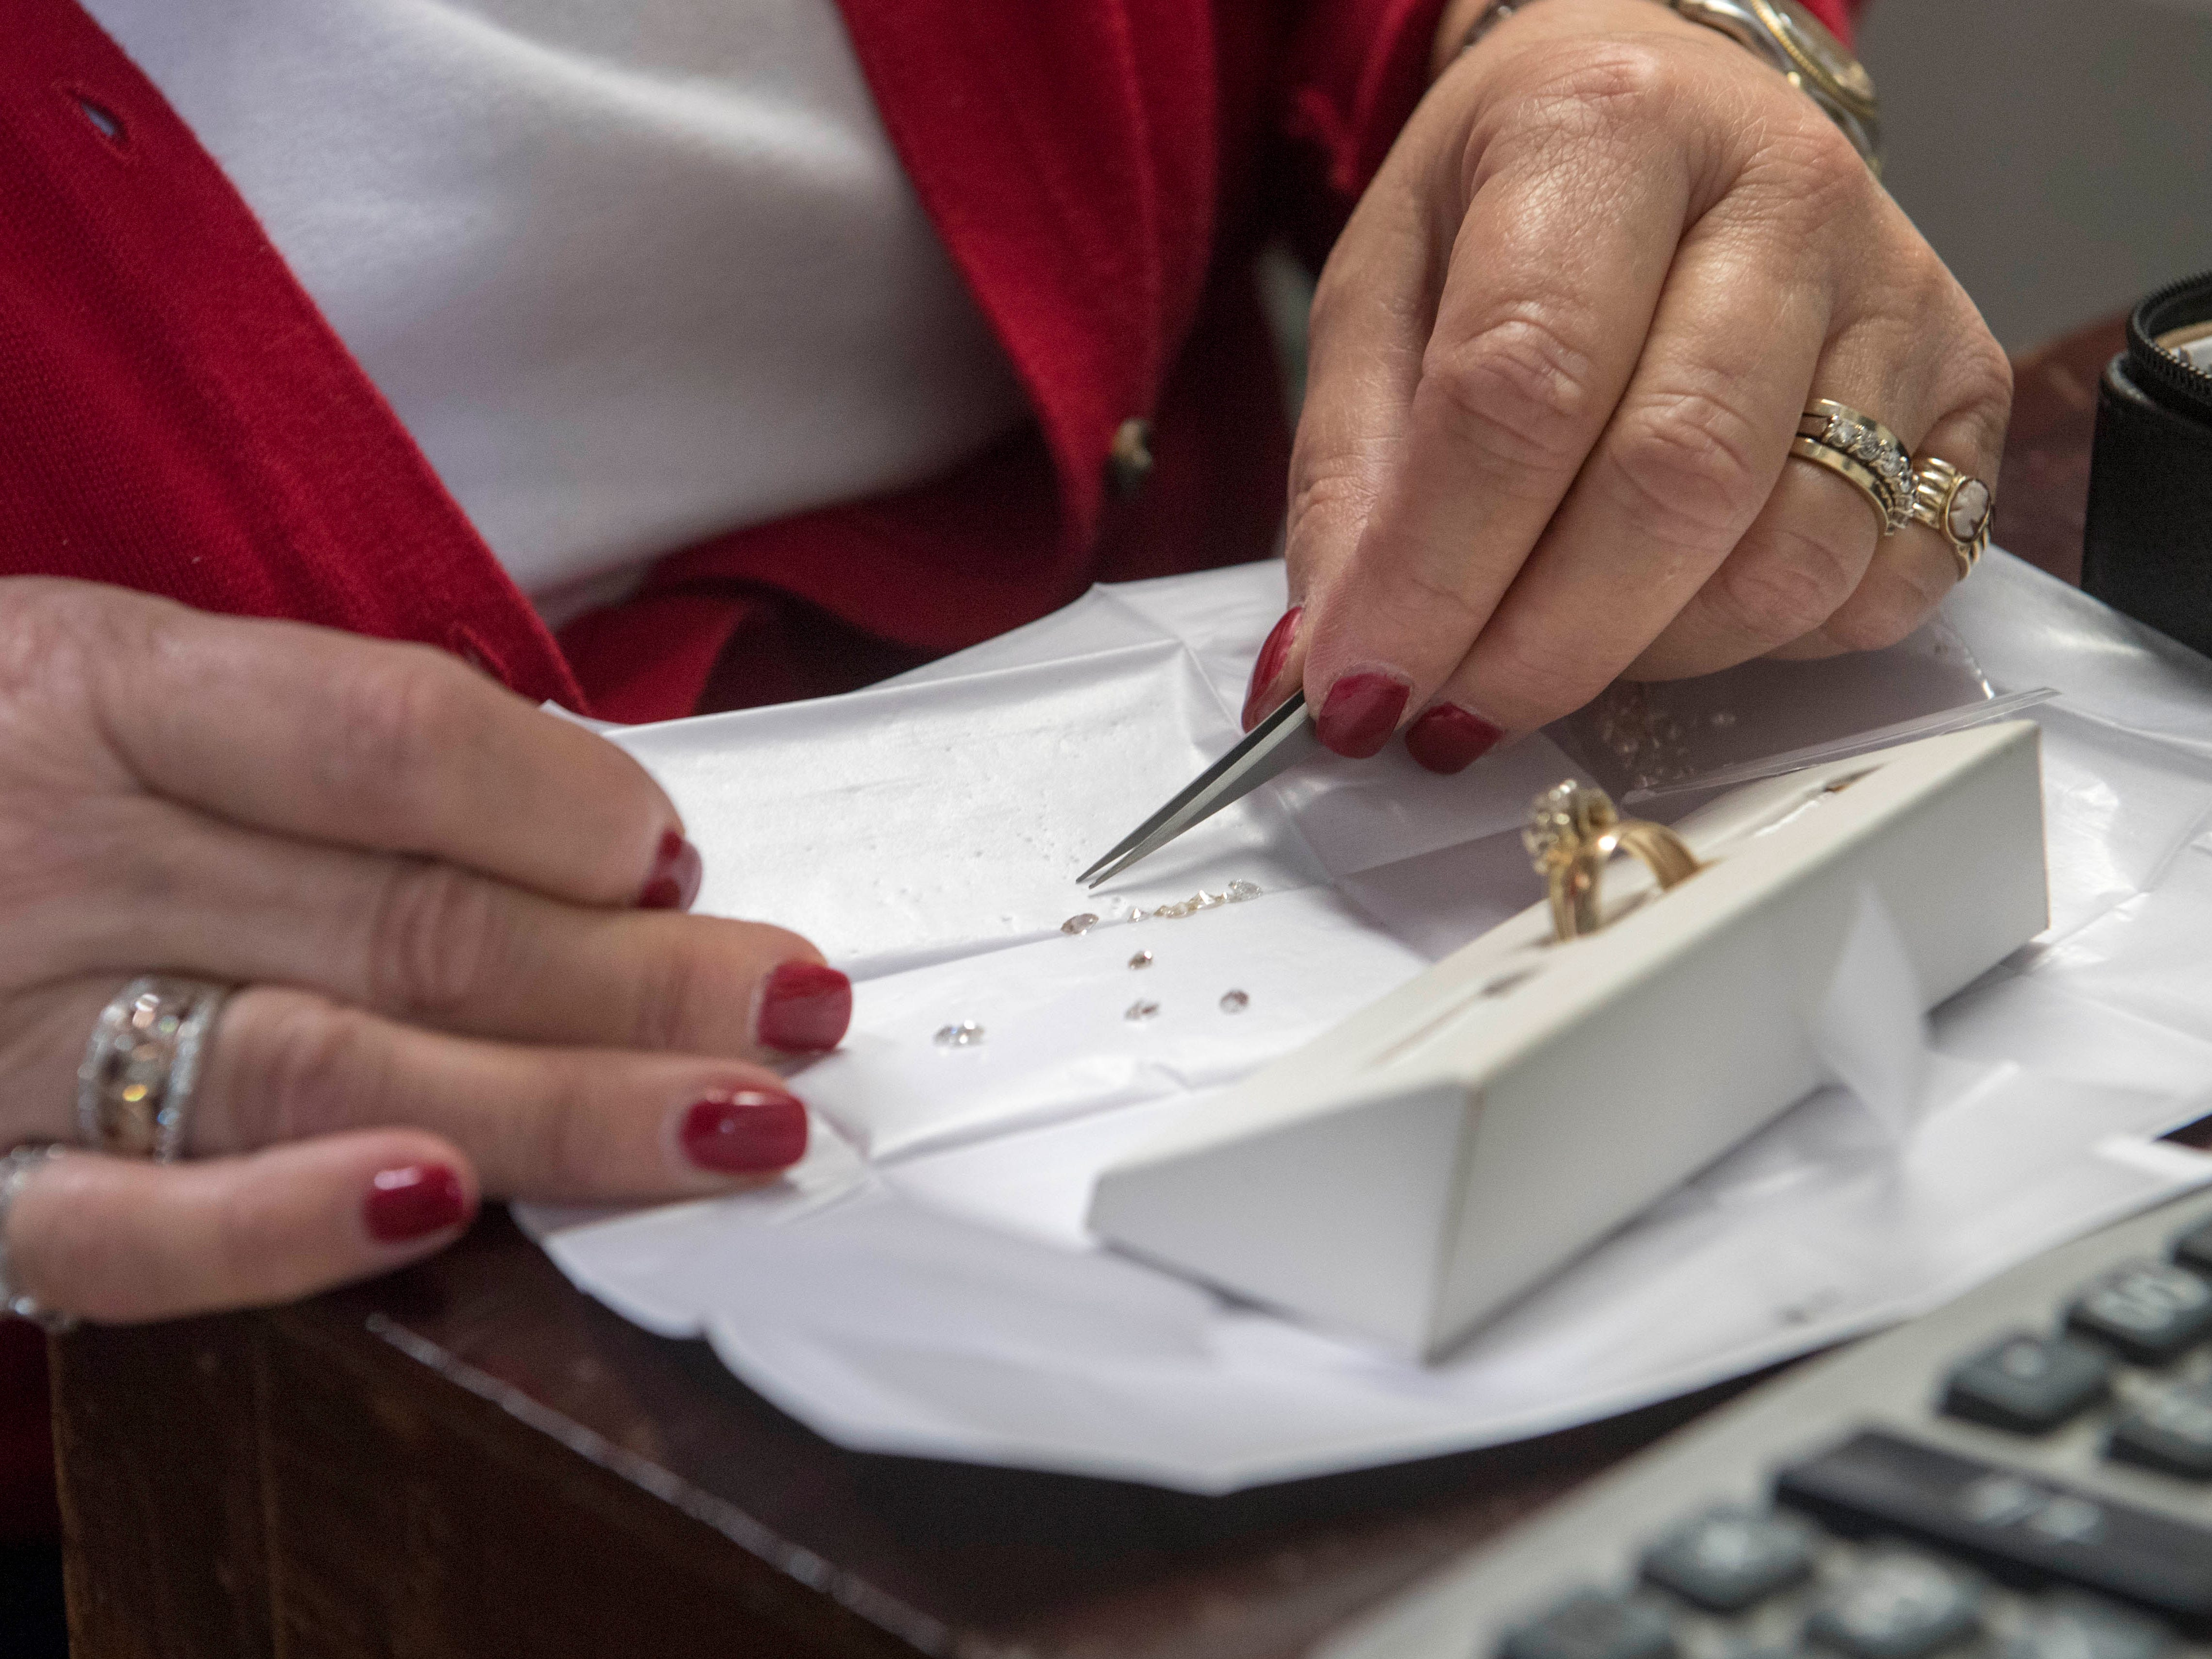 Owner Joan Turley picks out diamonds for a wedding ring Wednesday, April 10, 2019.  Turley Mfg. Jewelers is a third generation family own jewelry store in its 71st year in Downtown Evansville, Indiana.